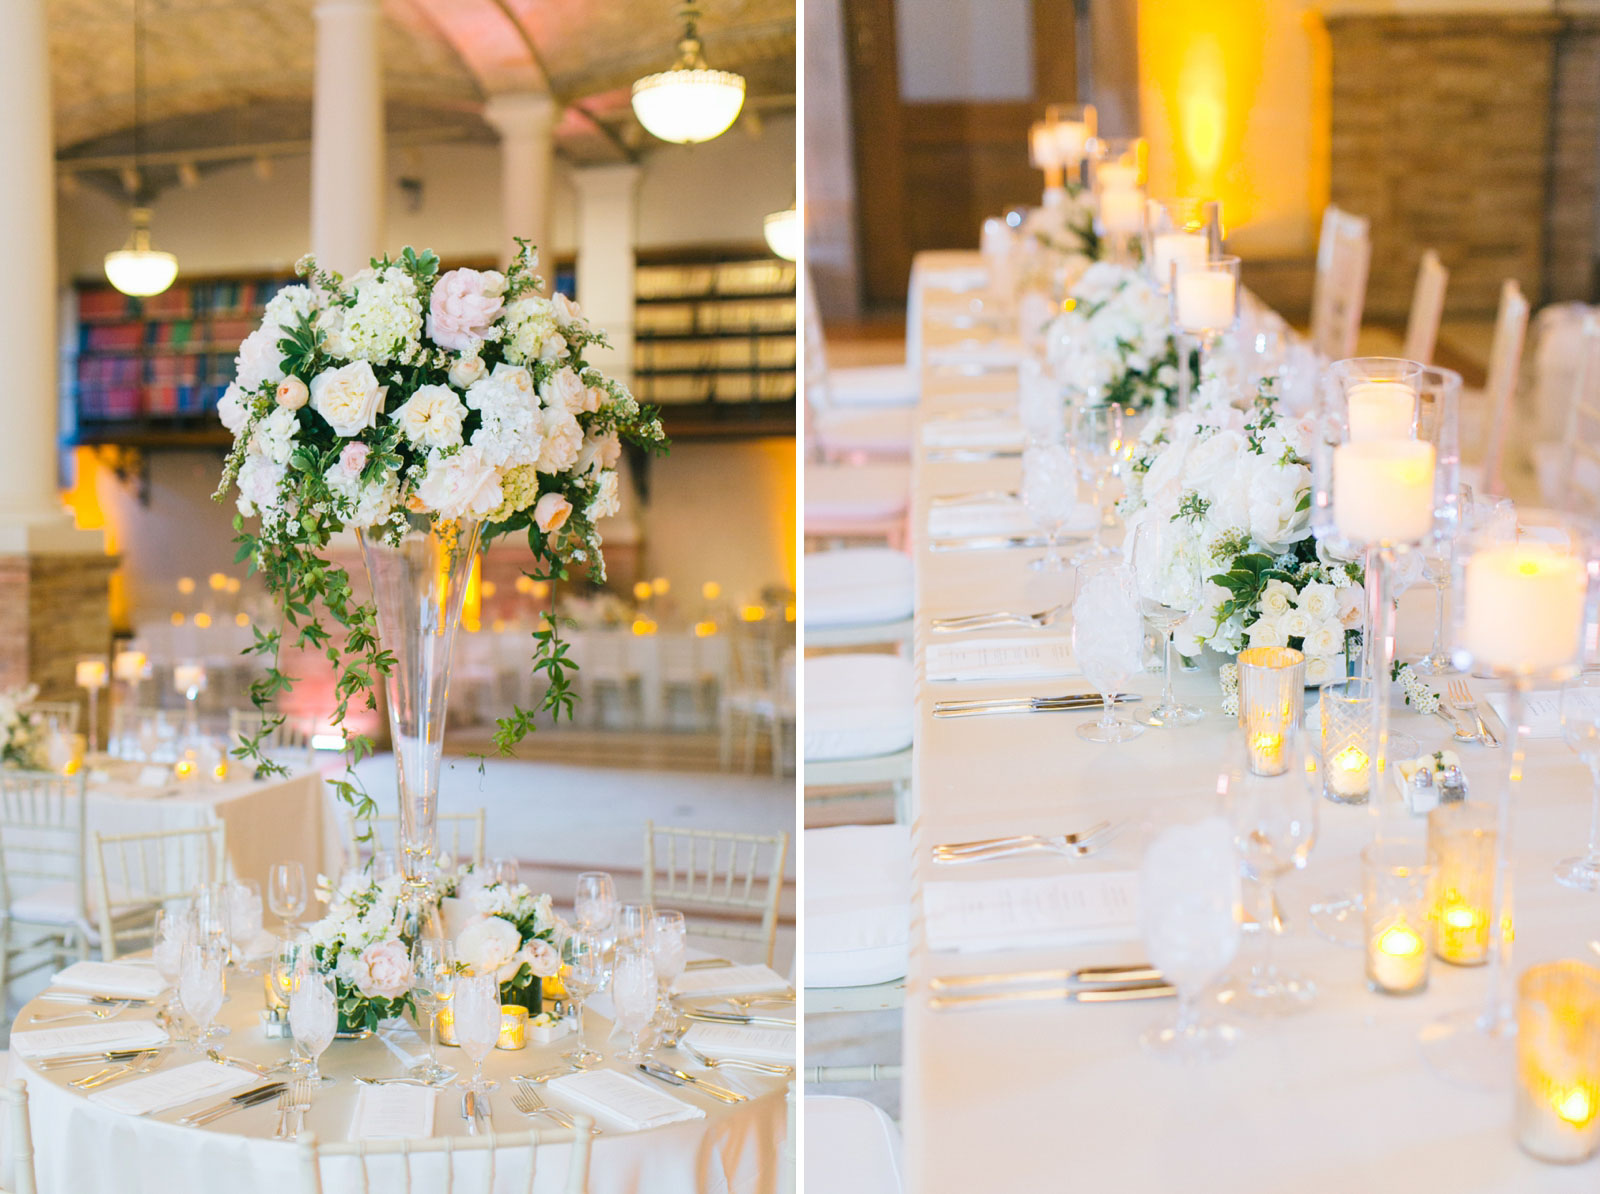 simple clean decor with white roses and pink peonies for wedding reception at BPL